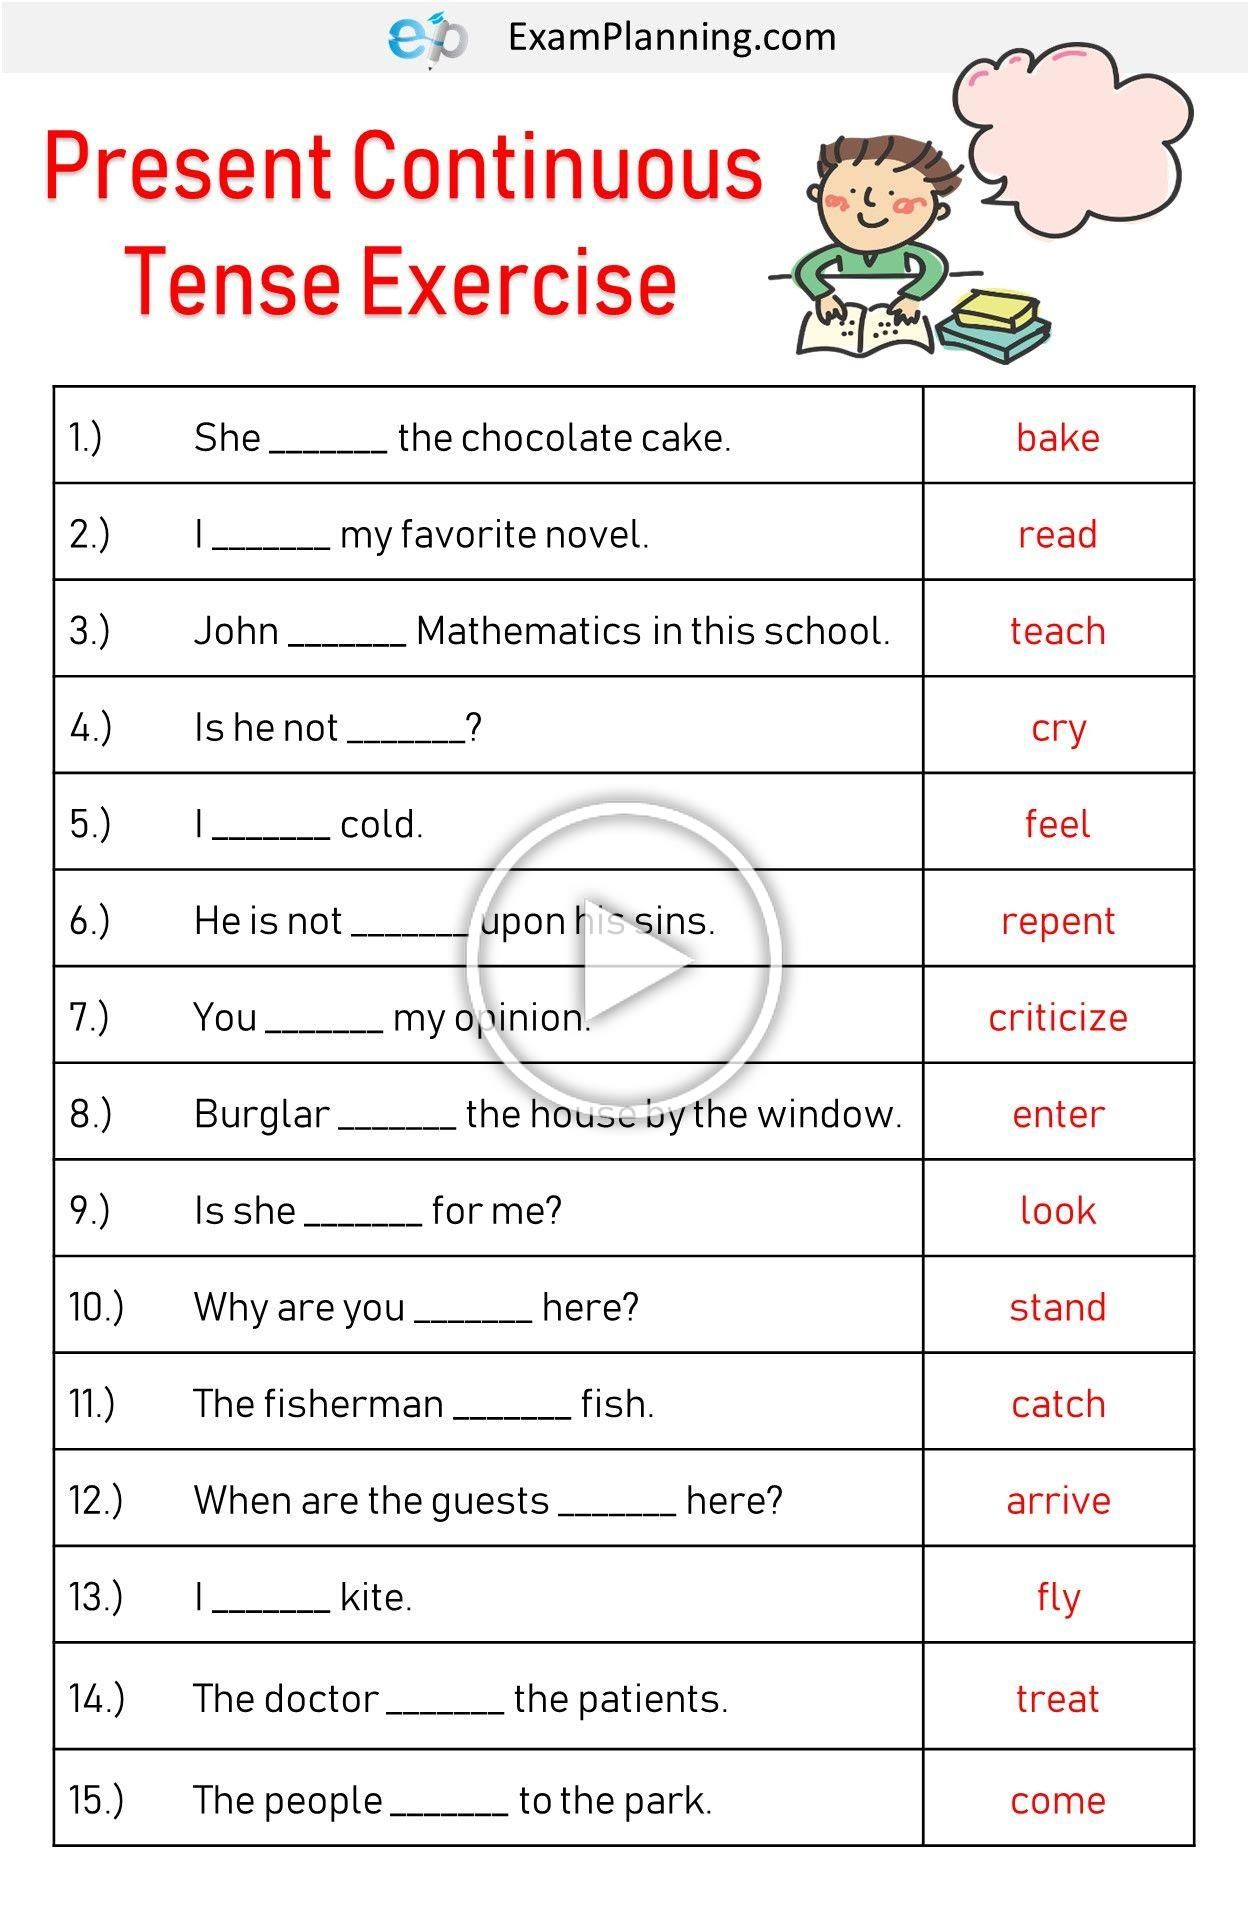 Present Continuous Tense Exercises In